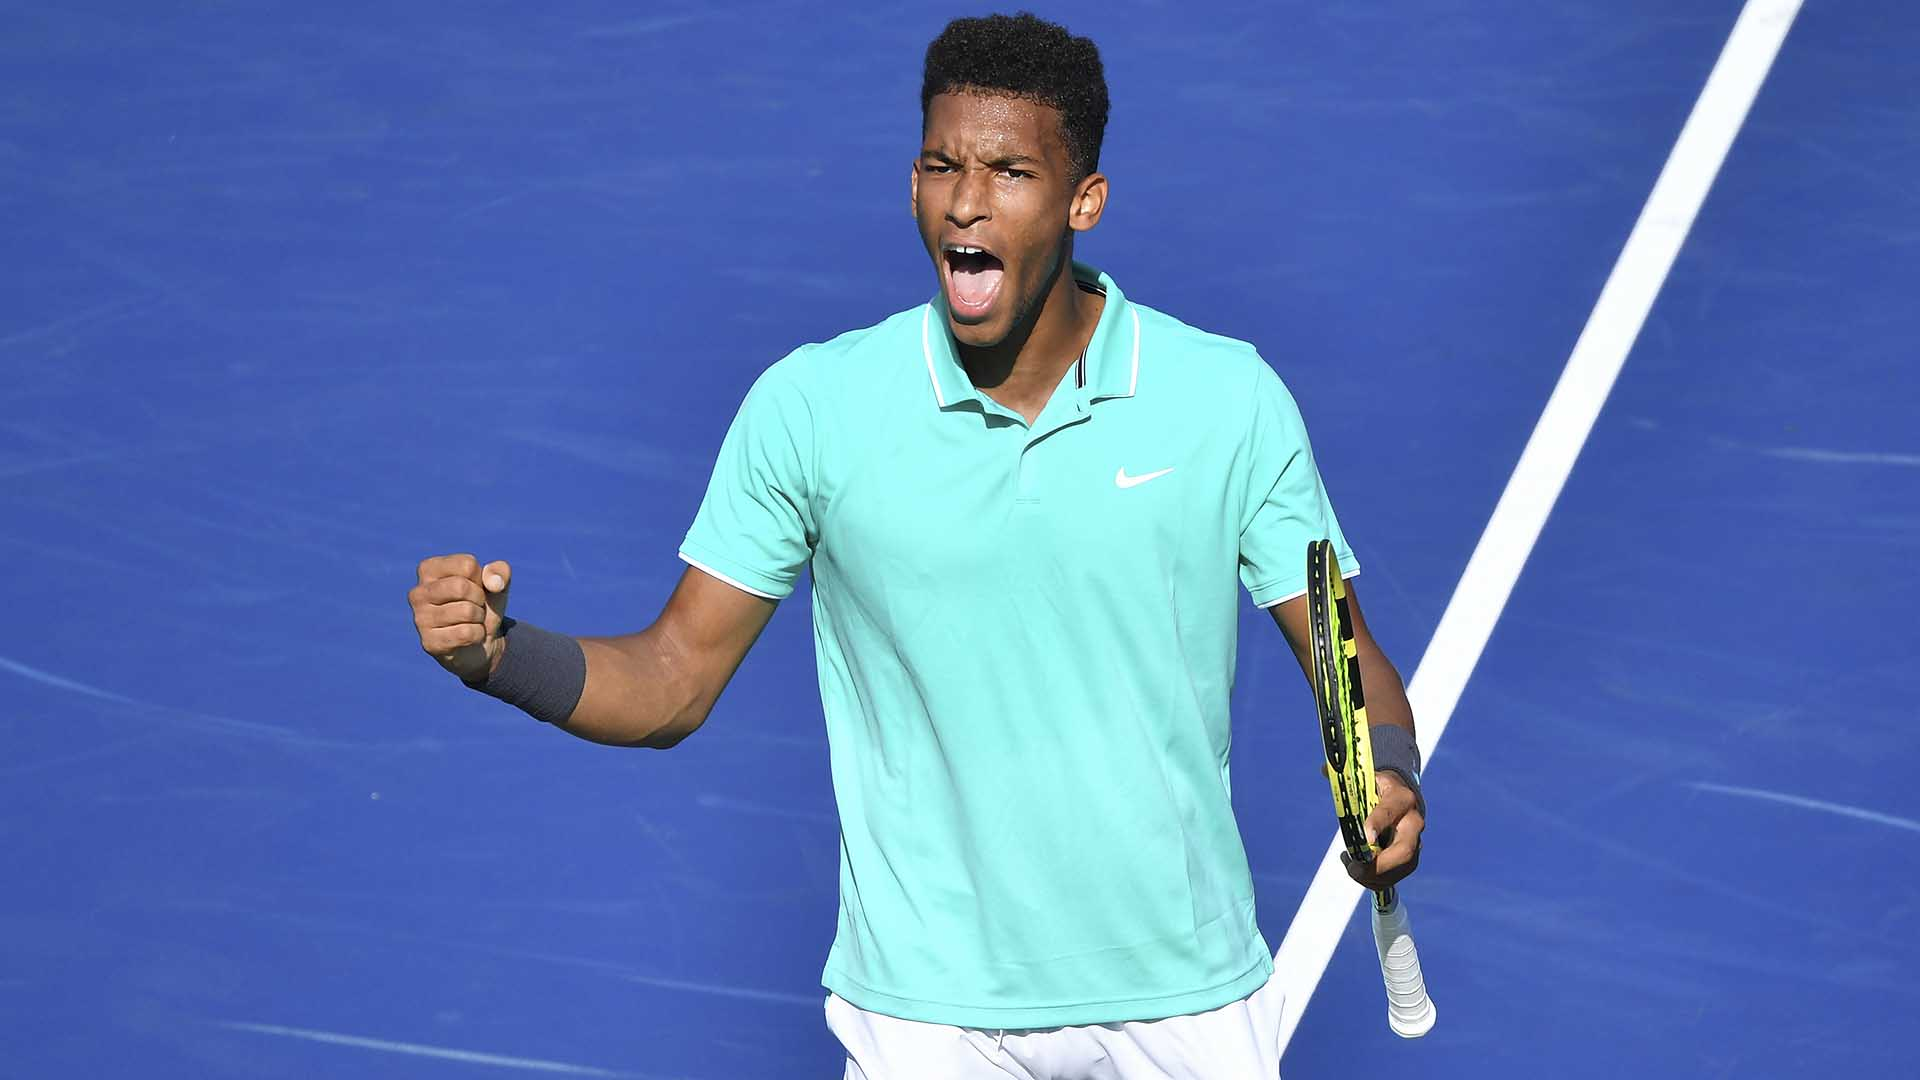 <a href='/en/players/felix-auger-aliassime/ag37/overview'>Felix Auger-Aliassime</a> iplays <a href='/en/players/karen-khachanov/ke29/overview'>Karen Khachanov</a> on Thursday at the Coupe Rogers, an ATP Masters 1000 tennis tournament in Montreal